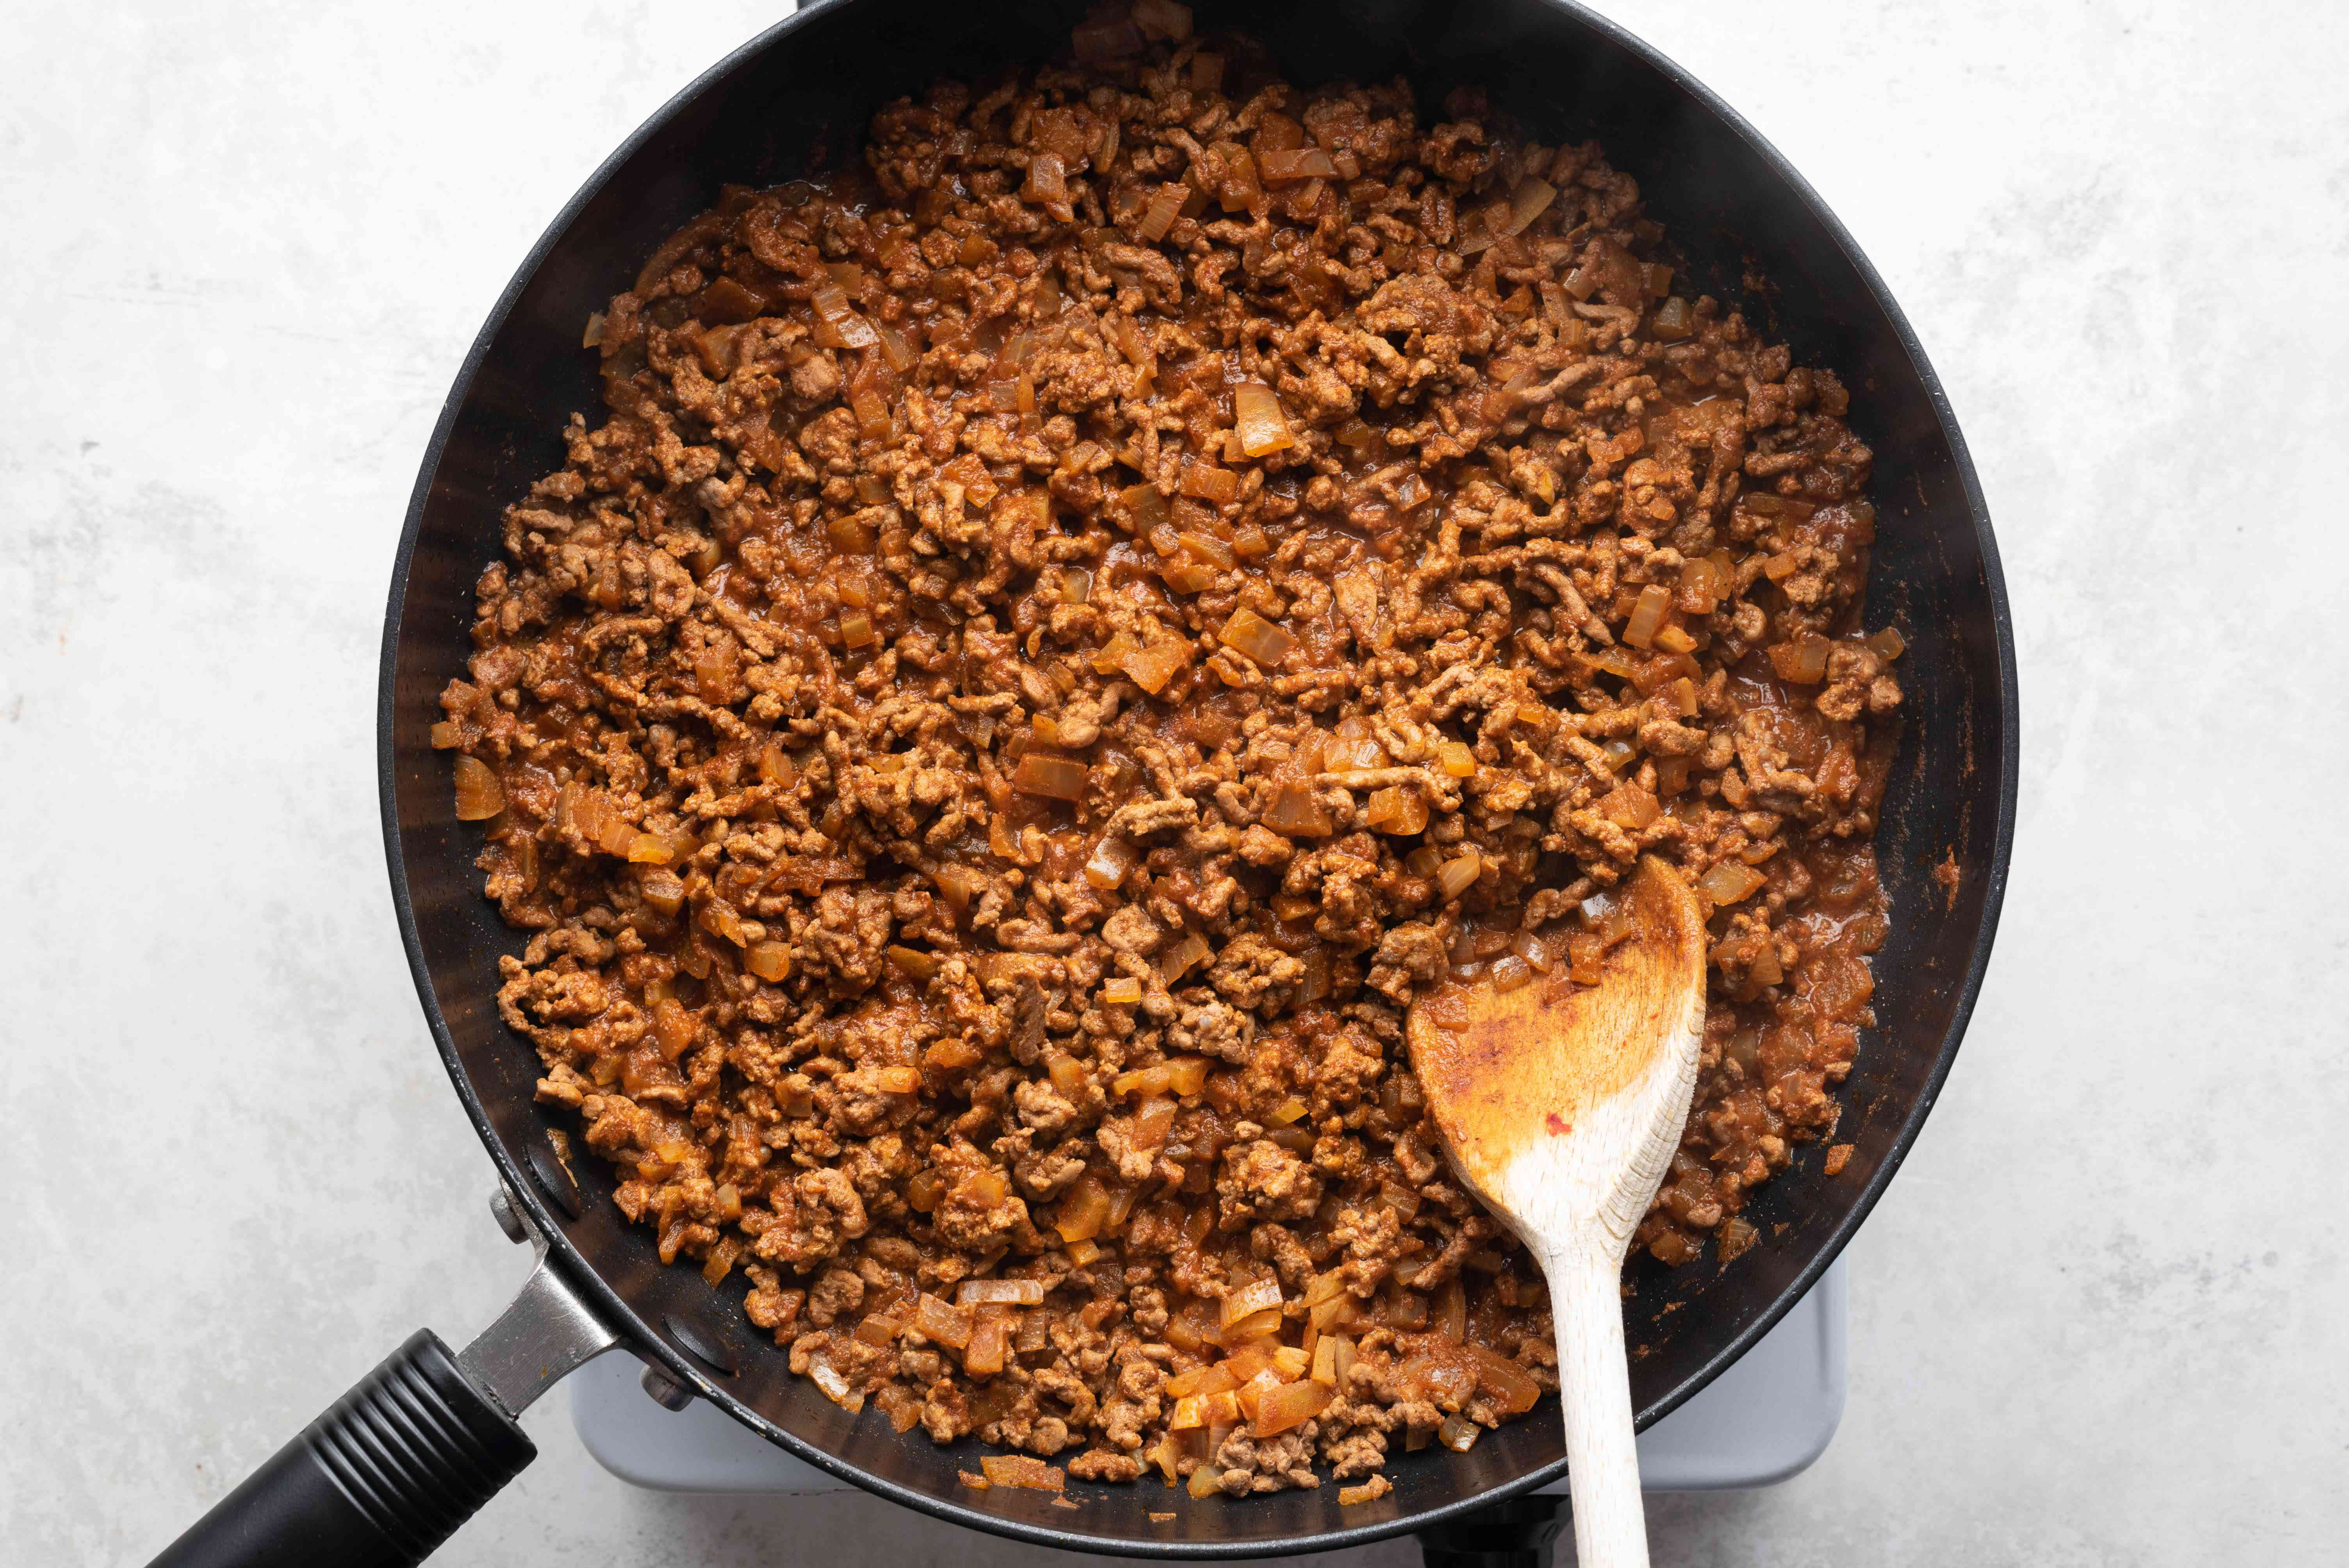 beef mixture cooking in a pan